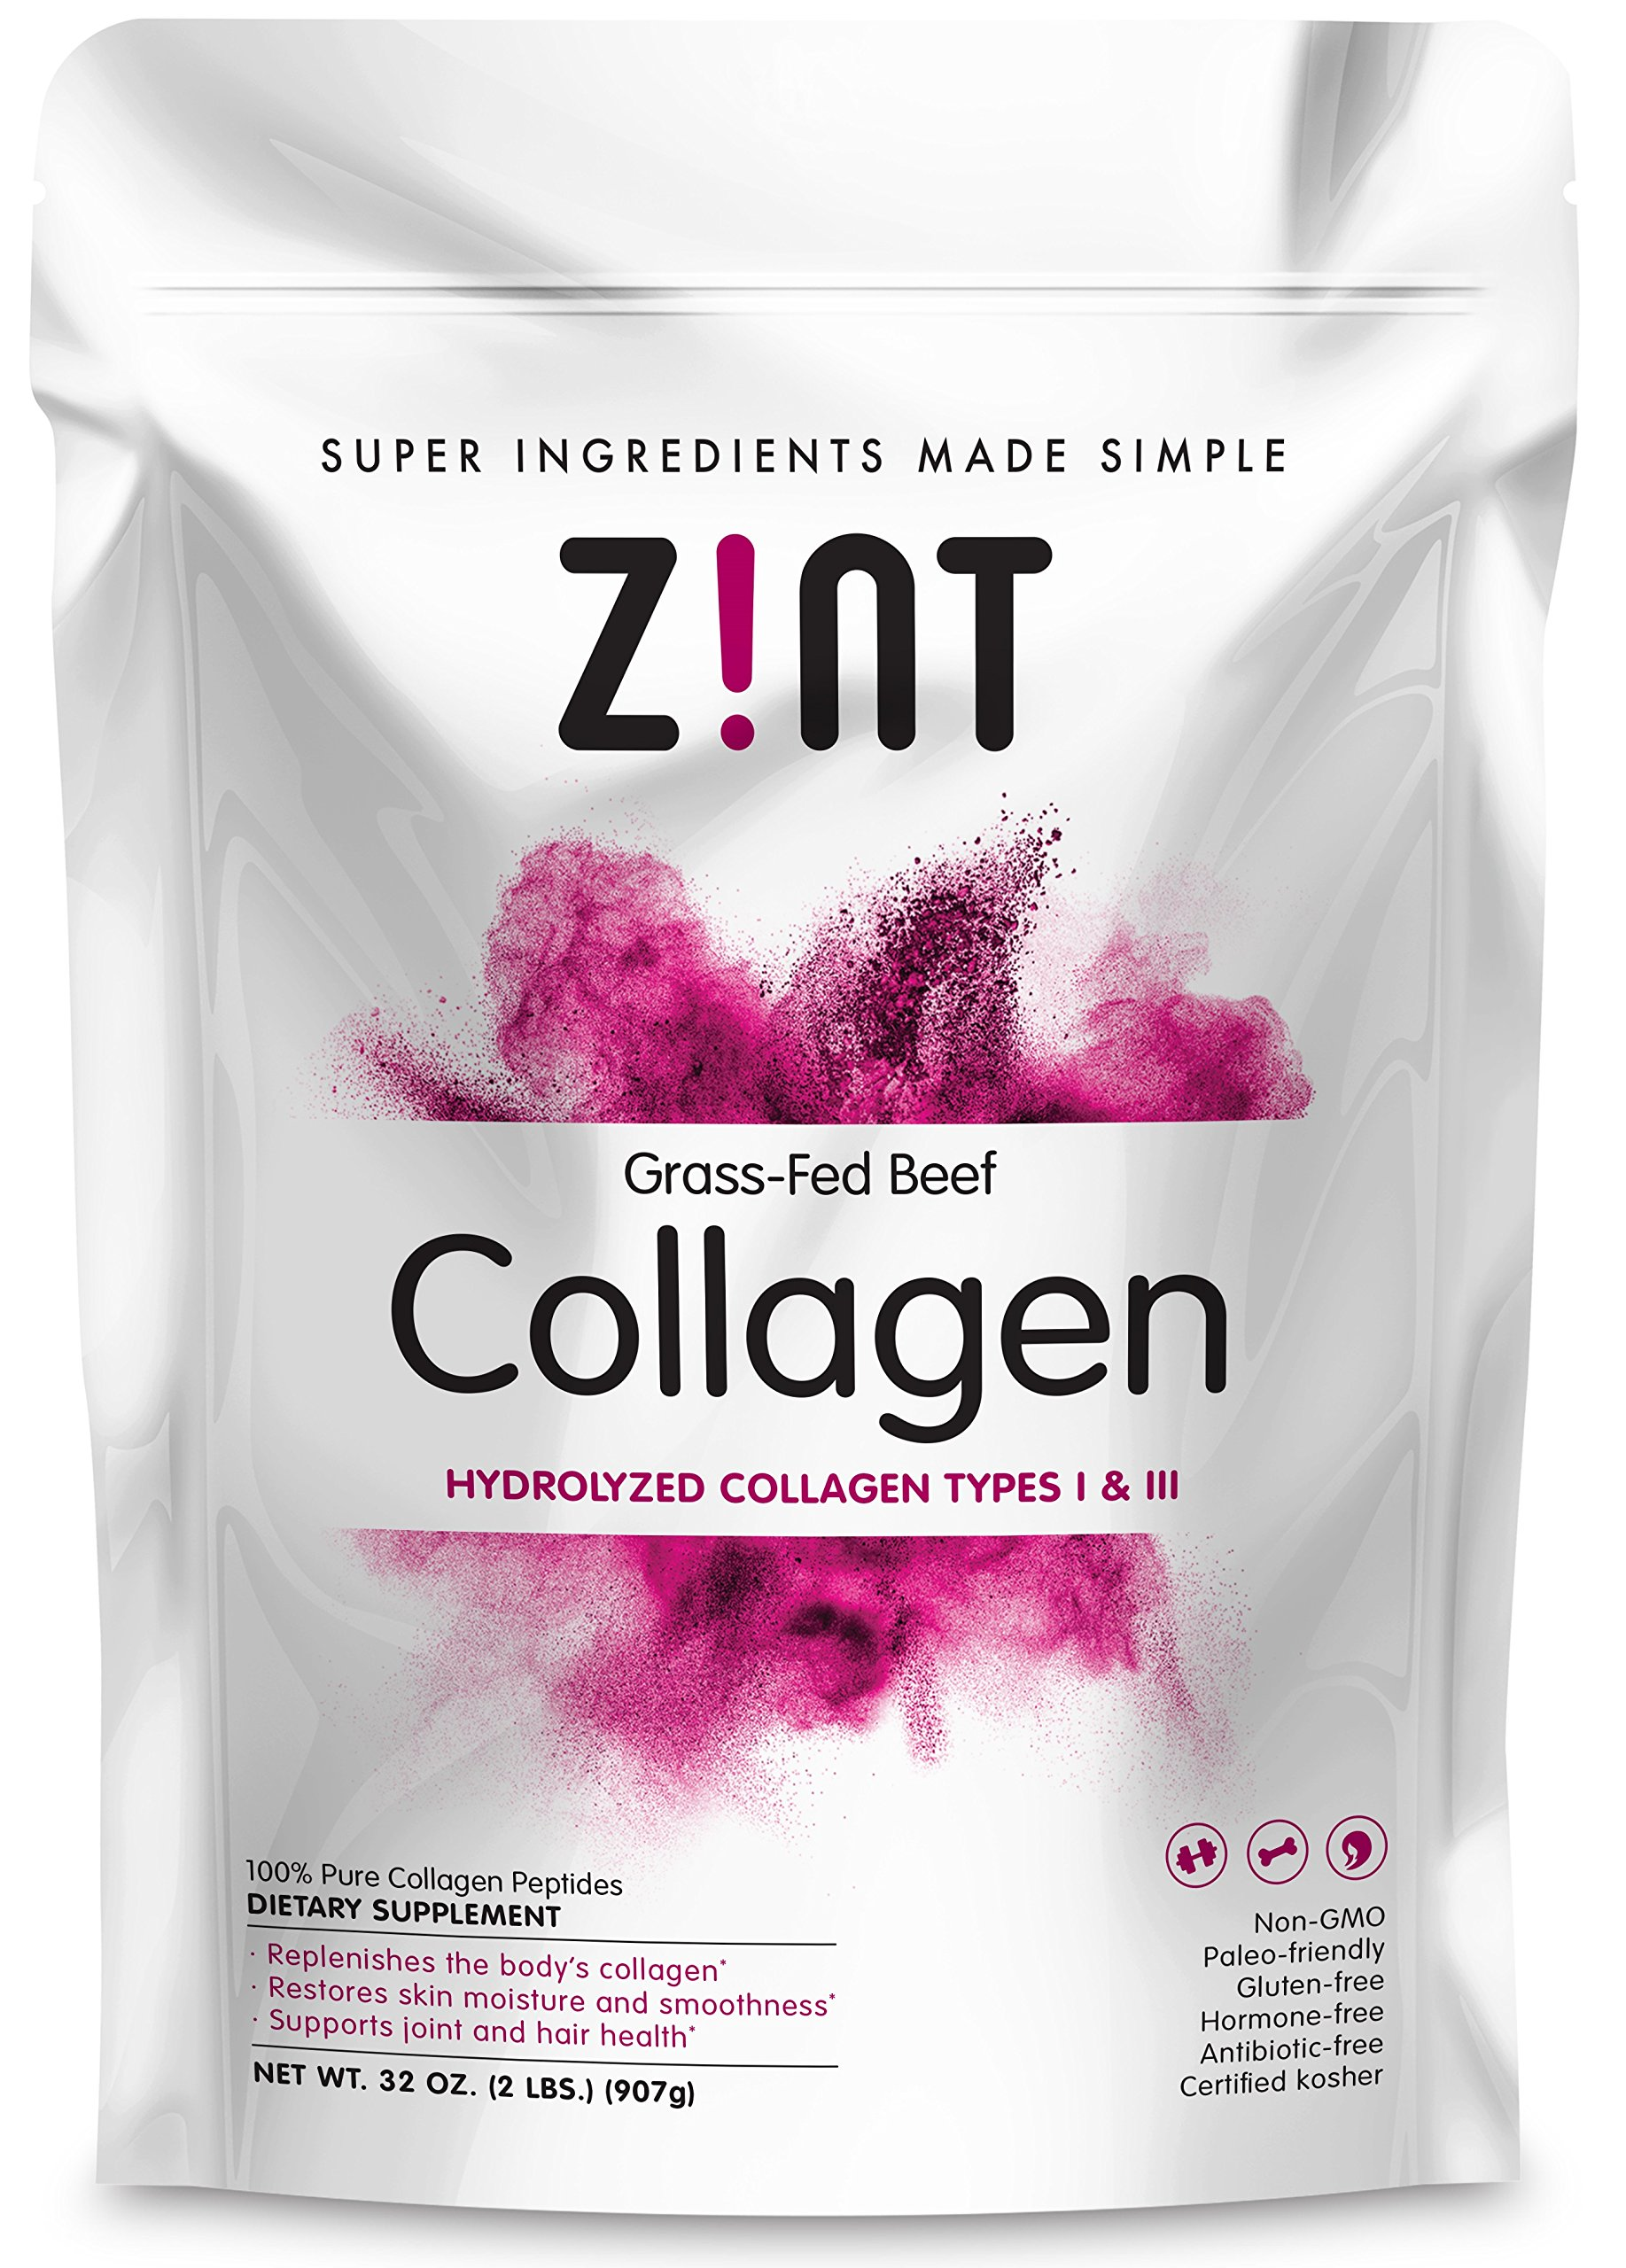 Collagen Powder Collagen Peptides XL (32 oz): Anti Aging Hydrolyzed Beauty Protein Powder Supplement for Women - for Skin, Hair & Nails